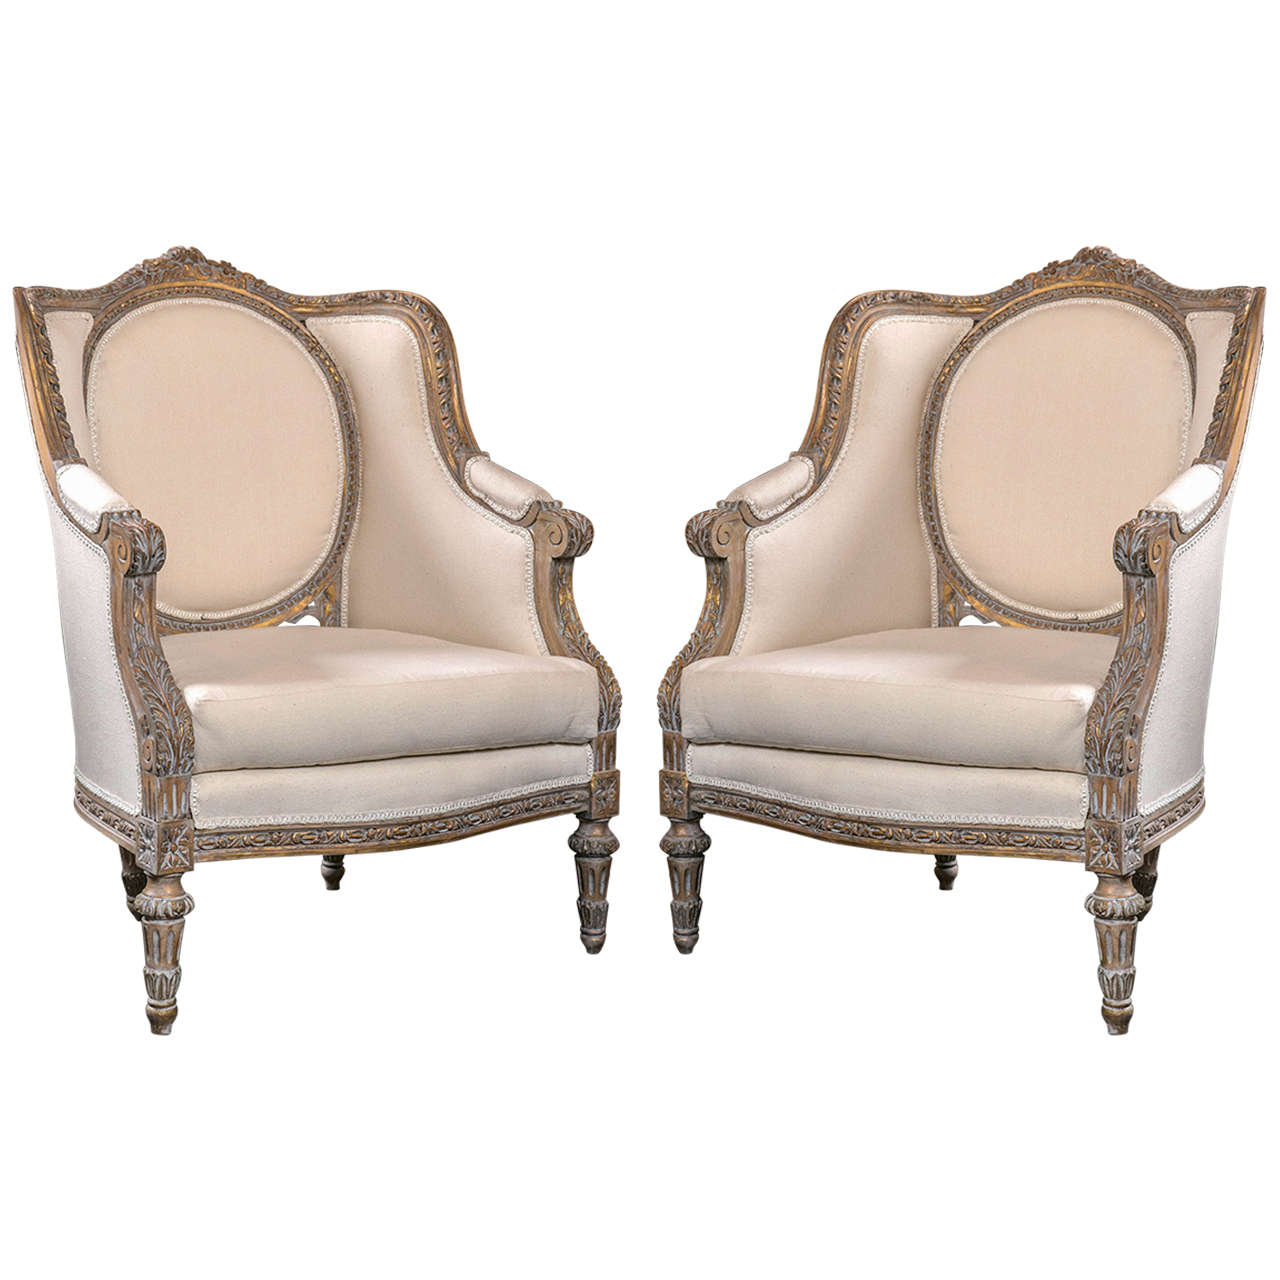 Pair of Vintage French Louis XVI Style Bergere Chairs For Sale - Pair Of Vintage French Louis XVI Style Bergere Chairs At 1stdibs